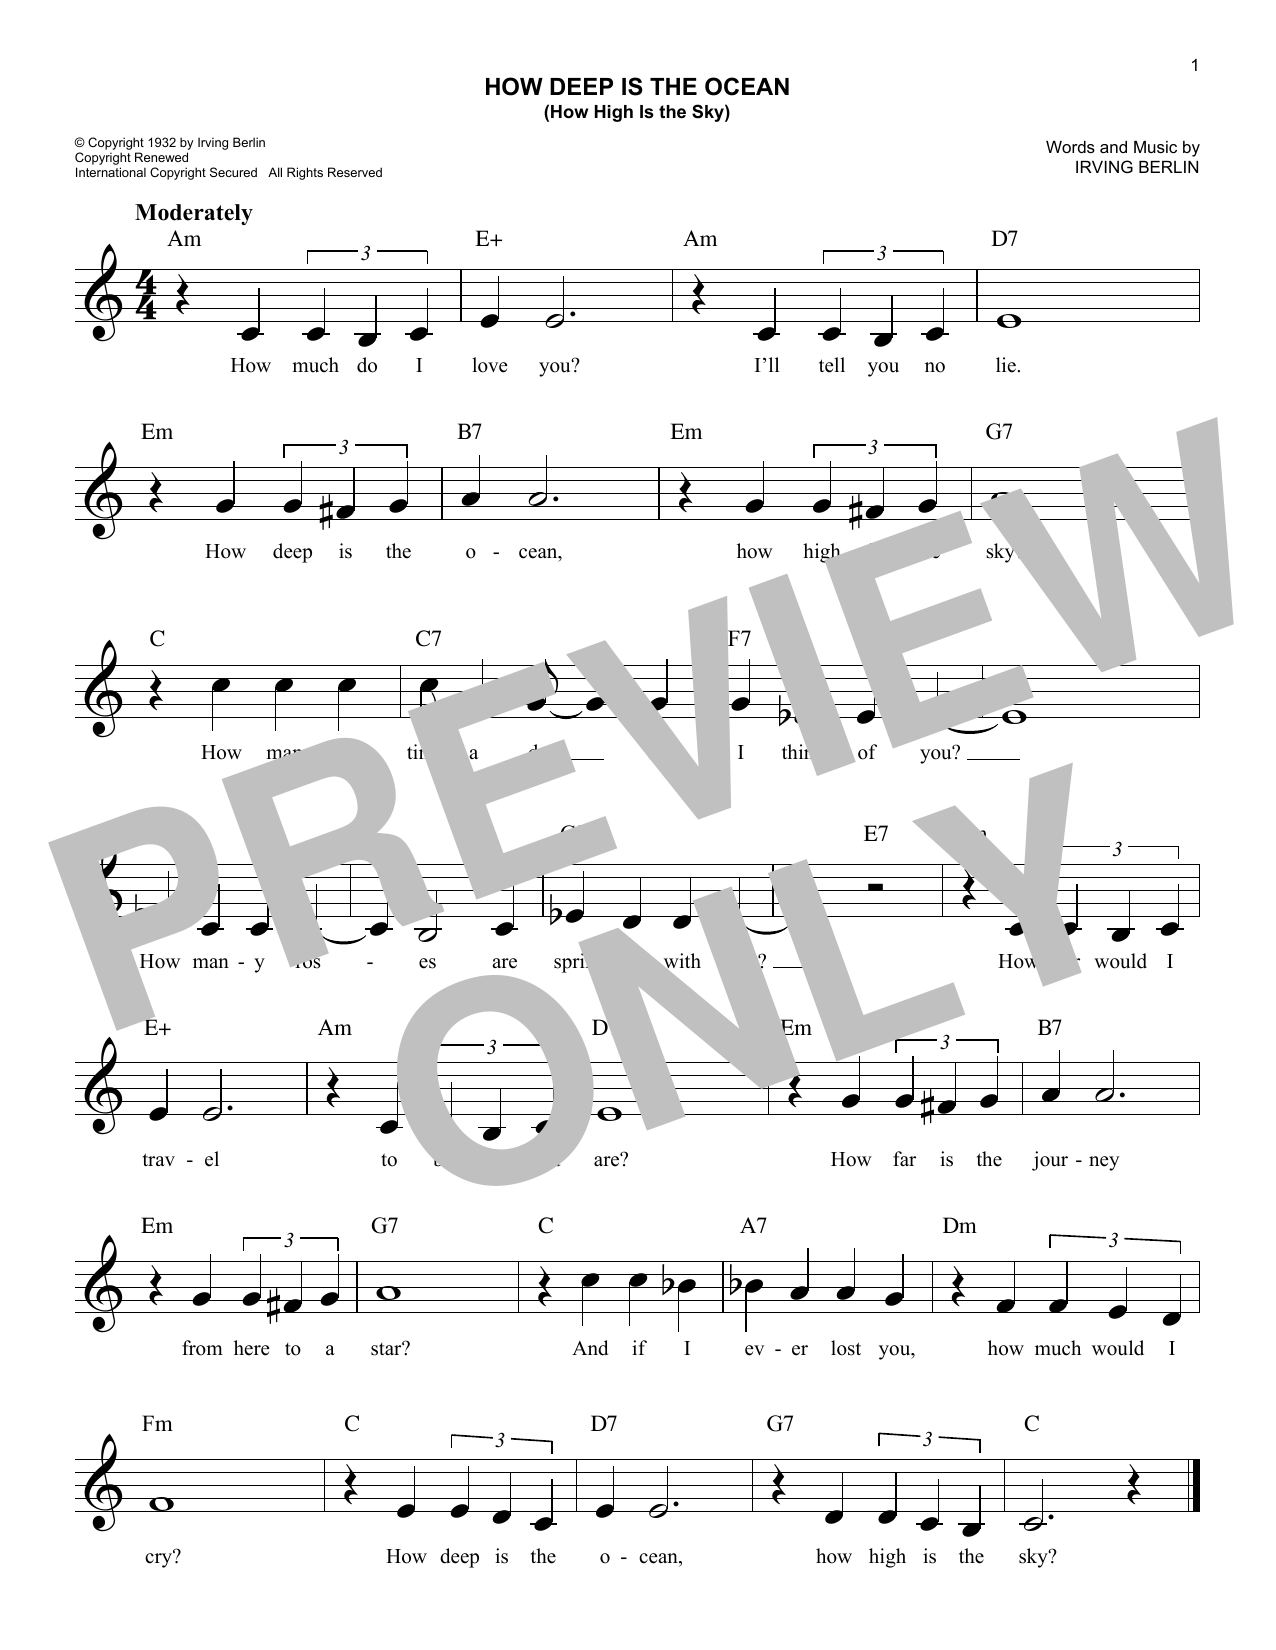 How Deep Is The Ocean (How High Is The Sky) Sheet Music